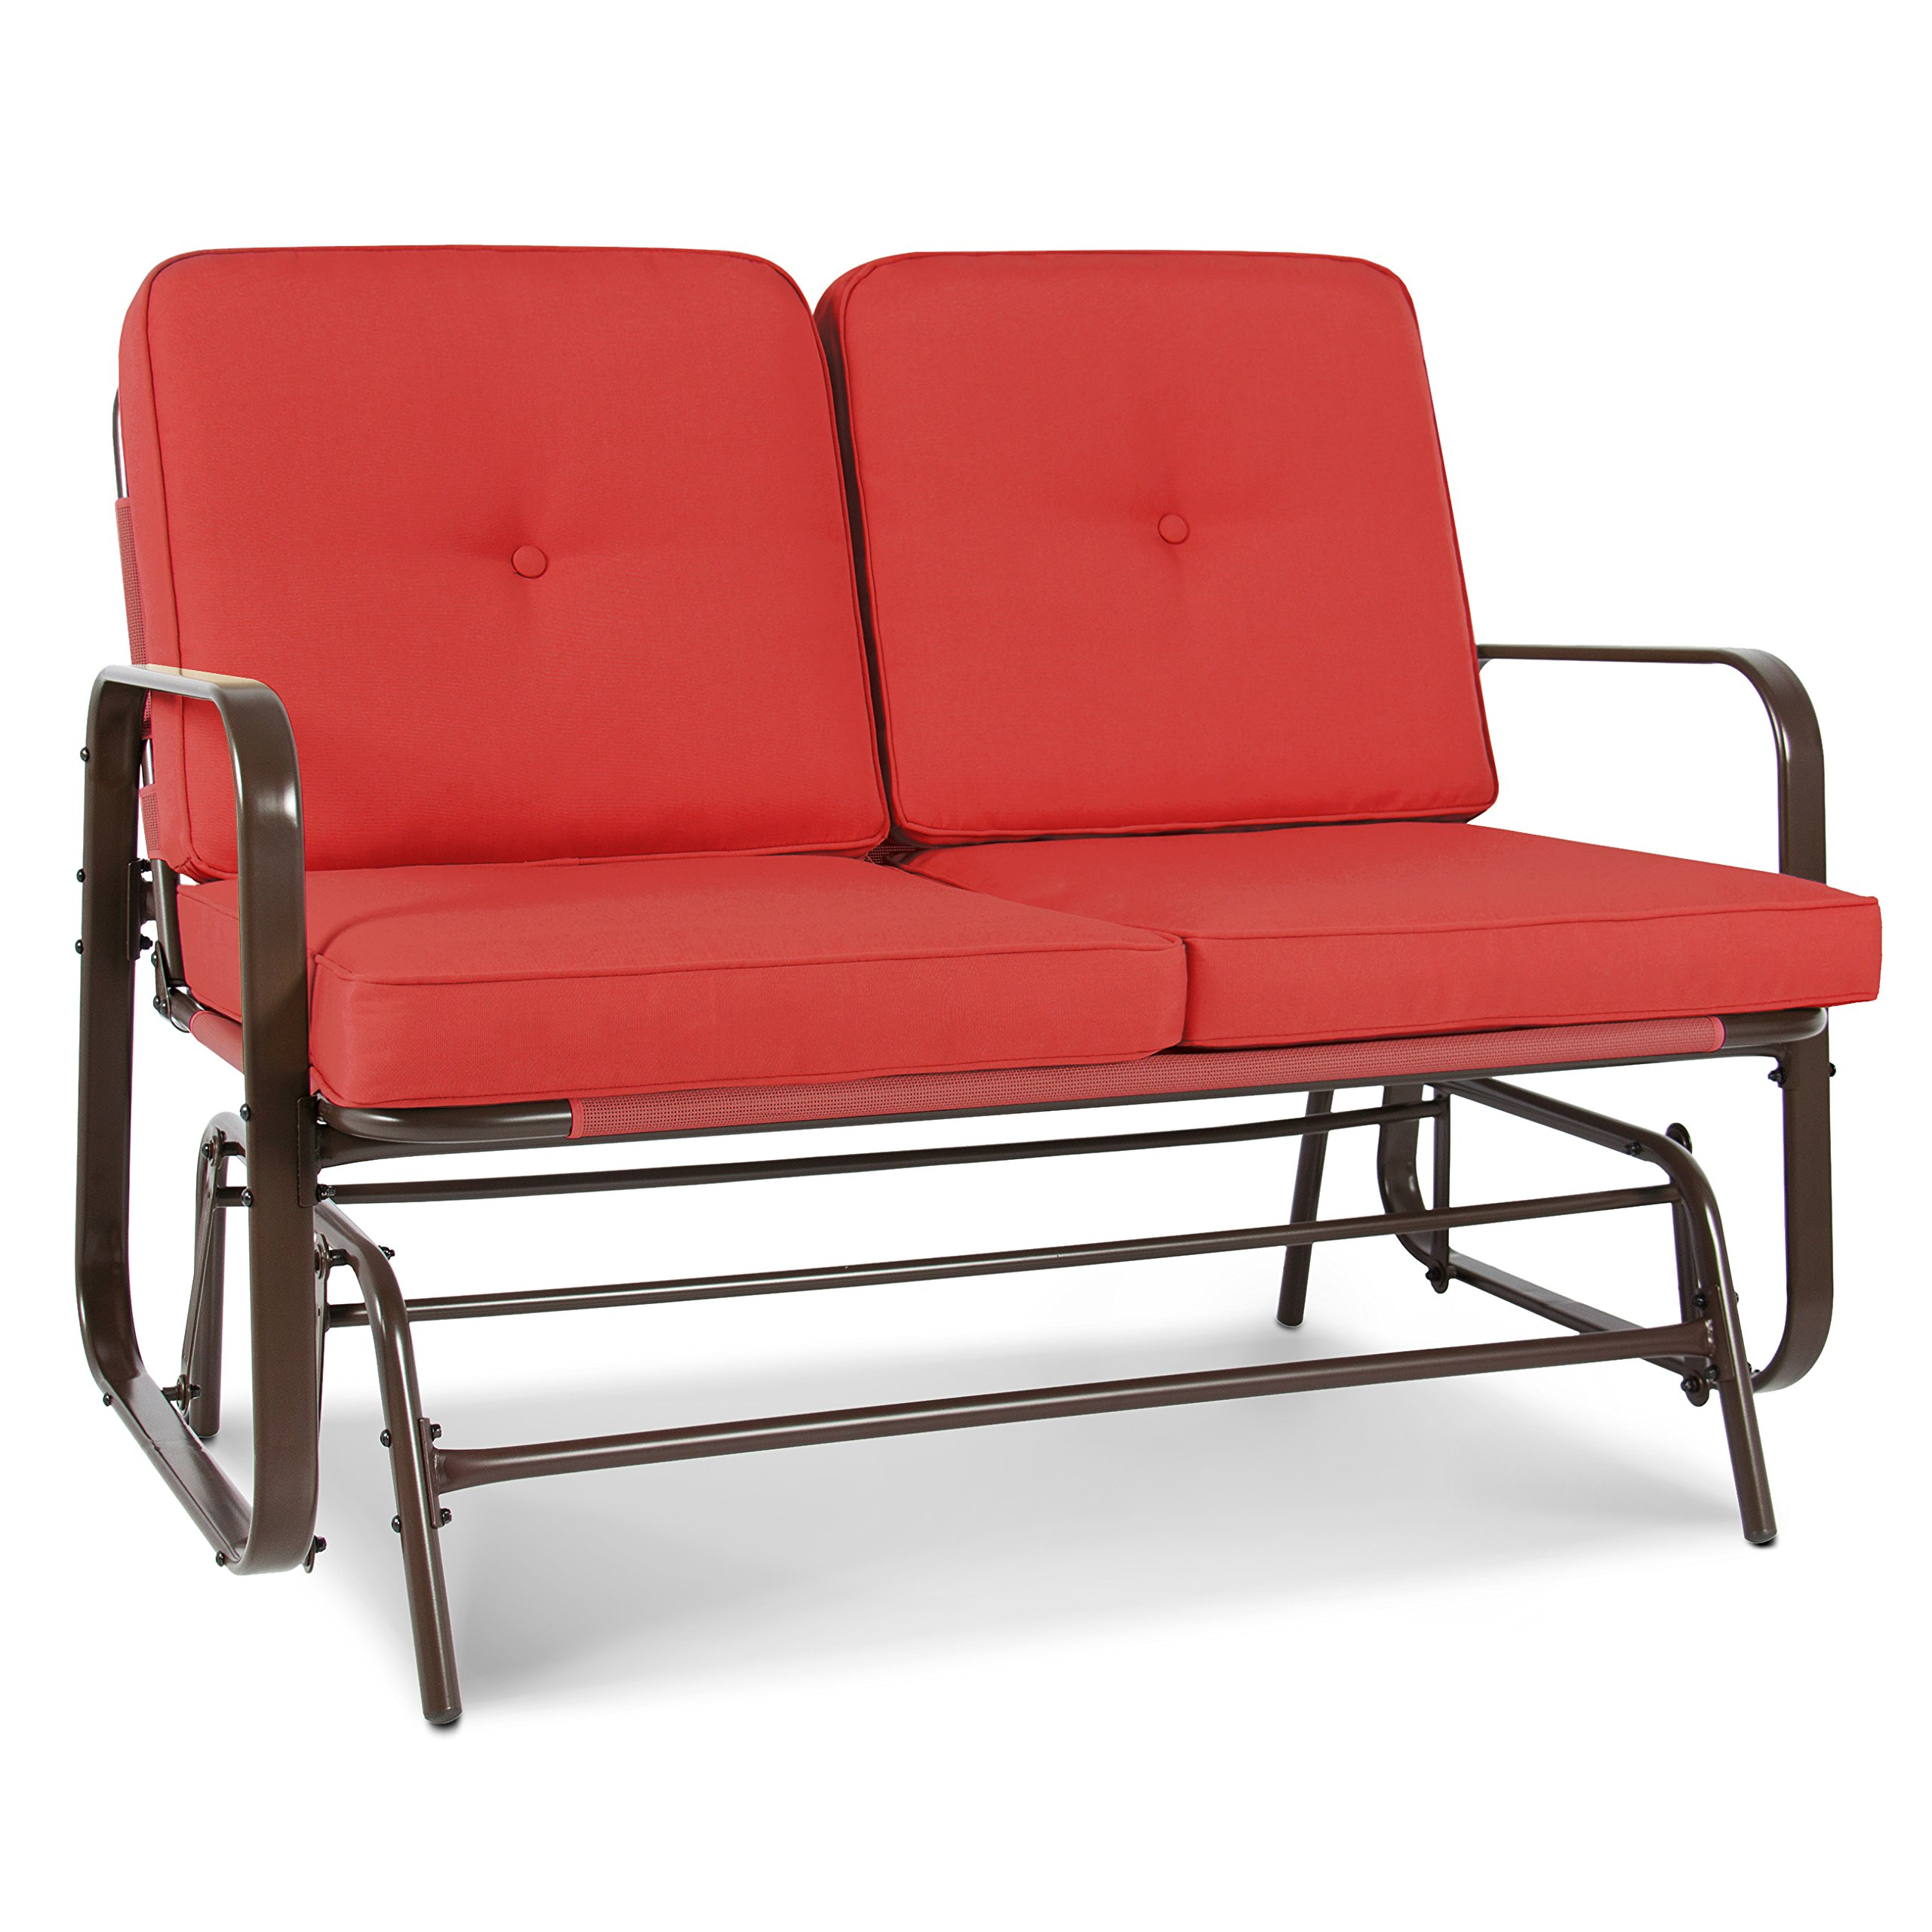 Best Choice Products 2-Person Outdoor Patio Glider Loveseat Rocking Chair w/UV-Resistant Cushions - Red Orange